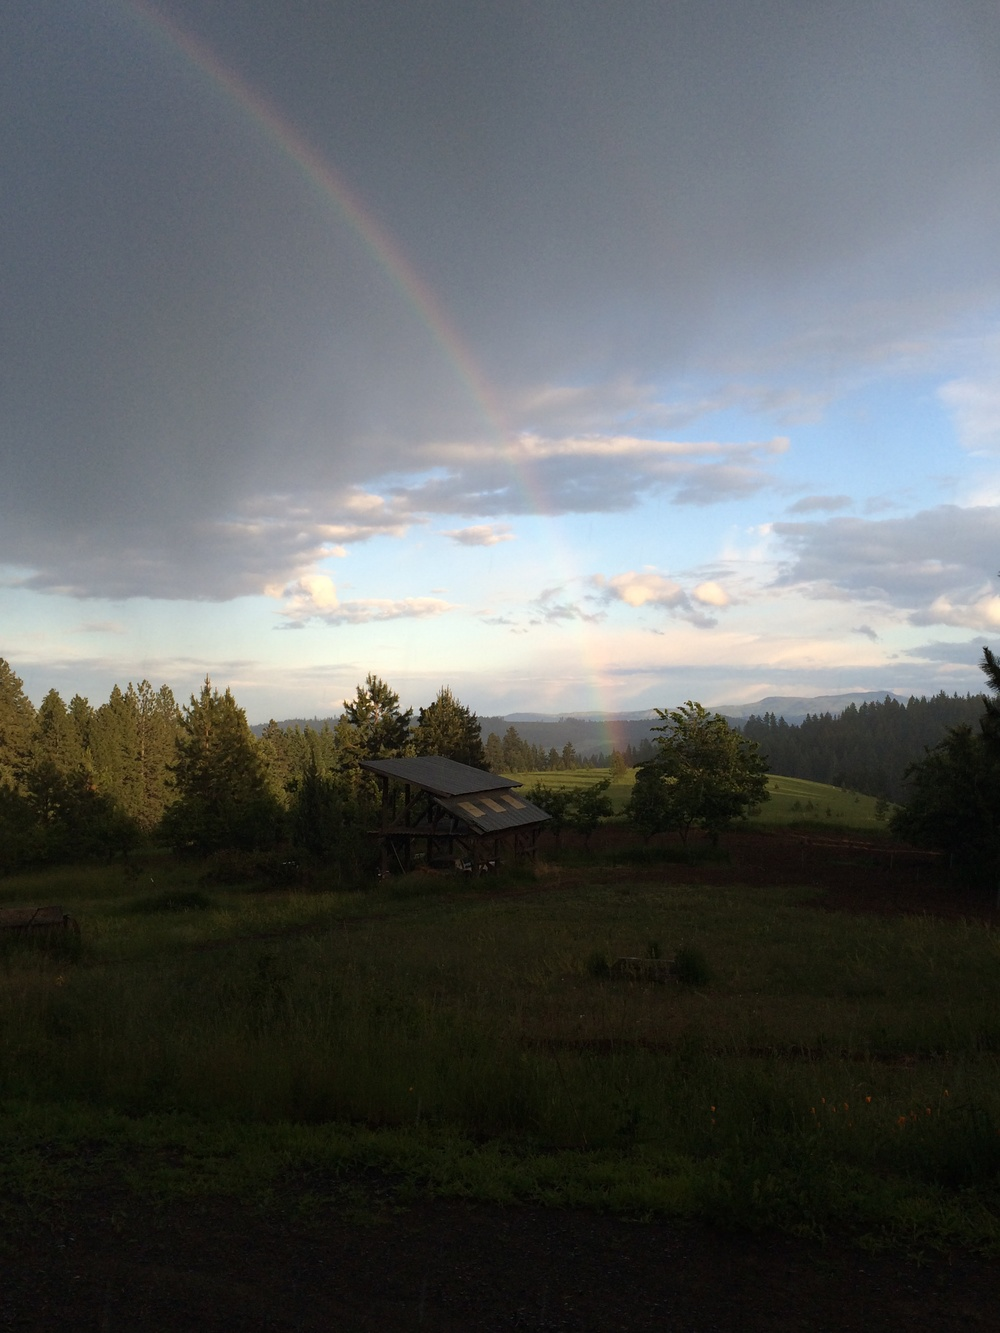 Rainbow connects Earth and Sky. 16 June 2014.